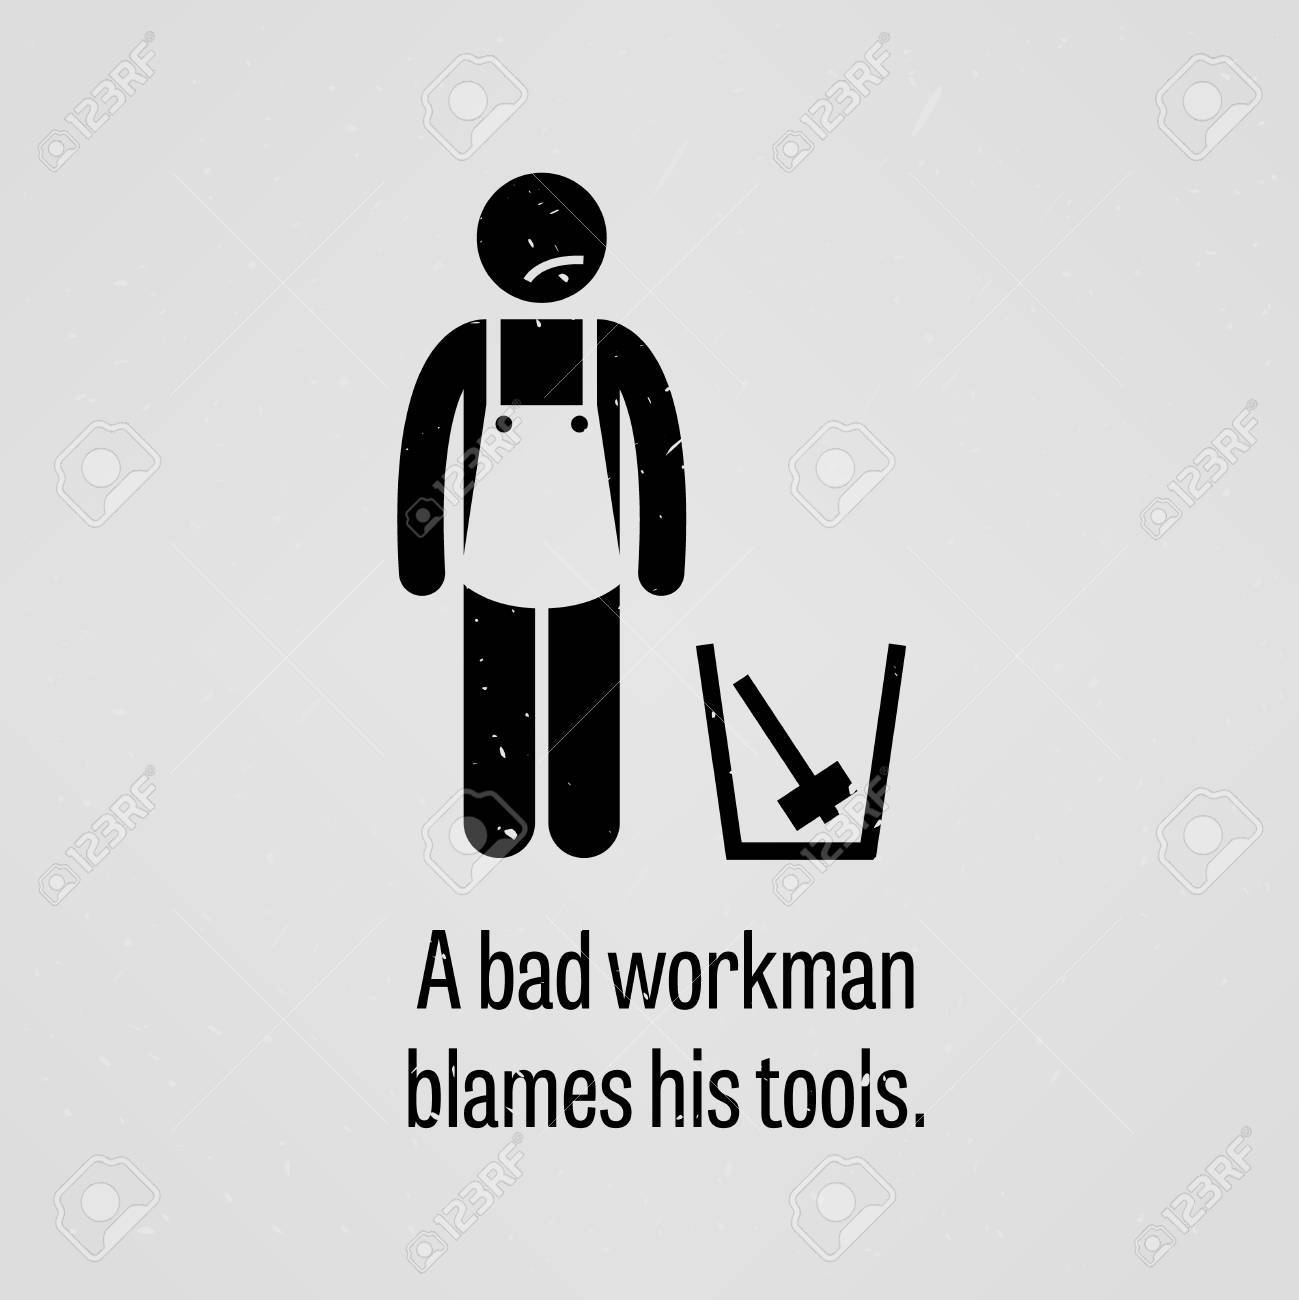 a bad workman blames his tools Translation for 'a bad workman blames his tools' in the free english-german dictionary and many other german translations.